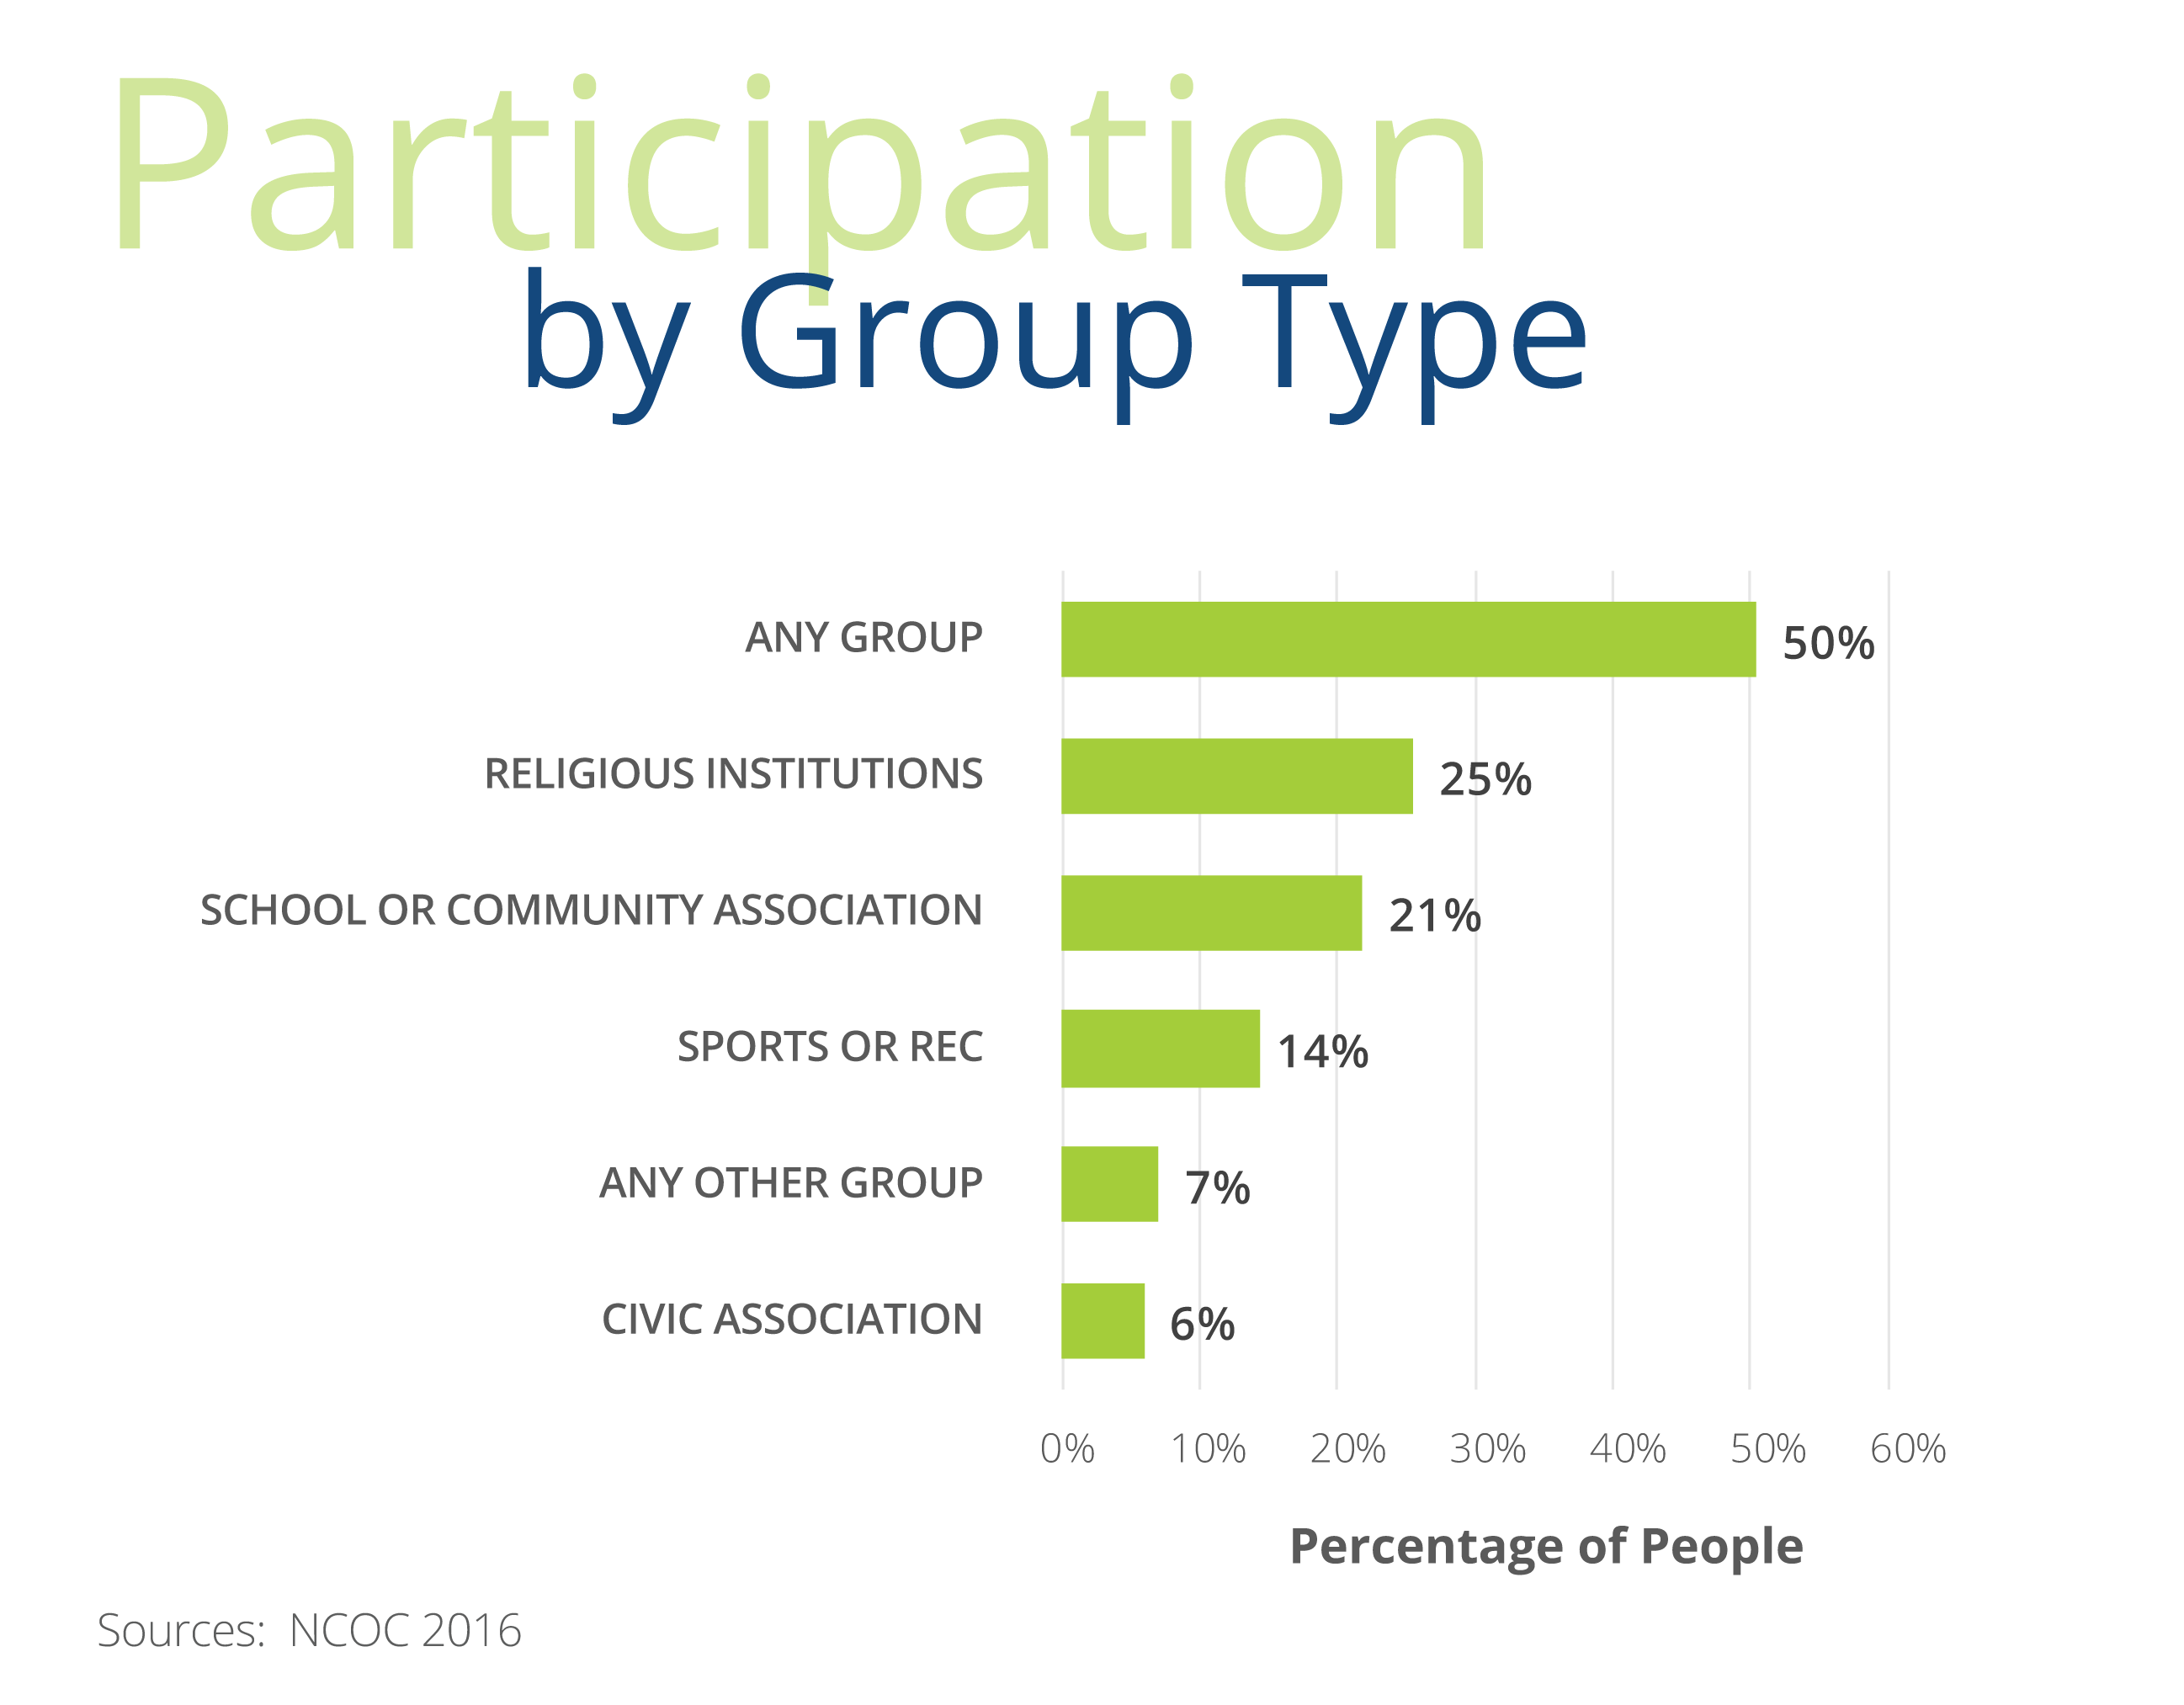 Participation by Group Type